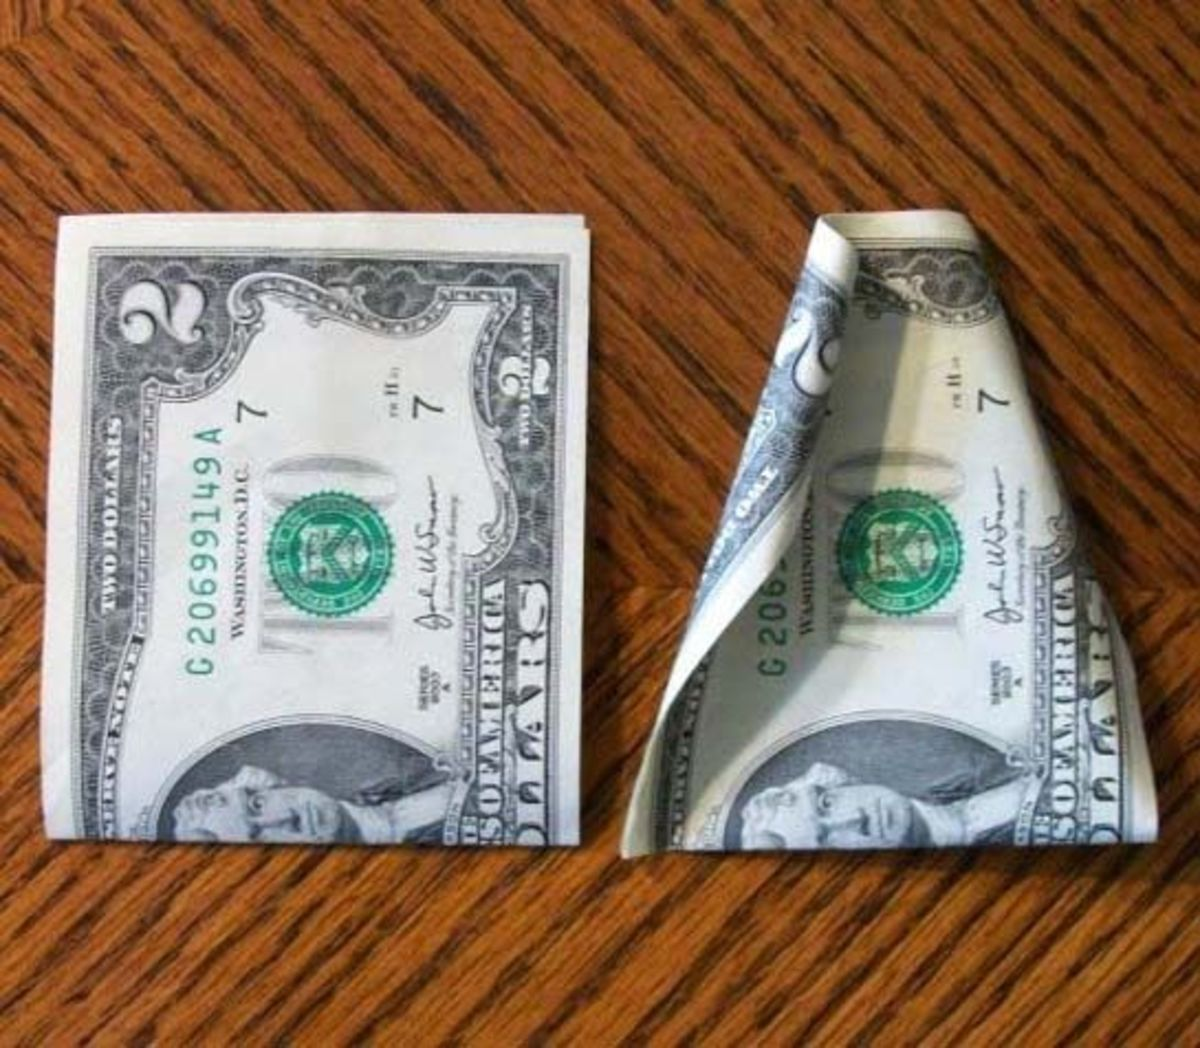 Step #1: Fold the bills in half first as it will make curling the edges easier.